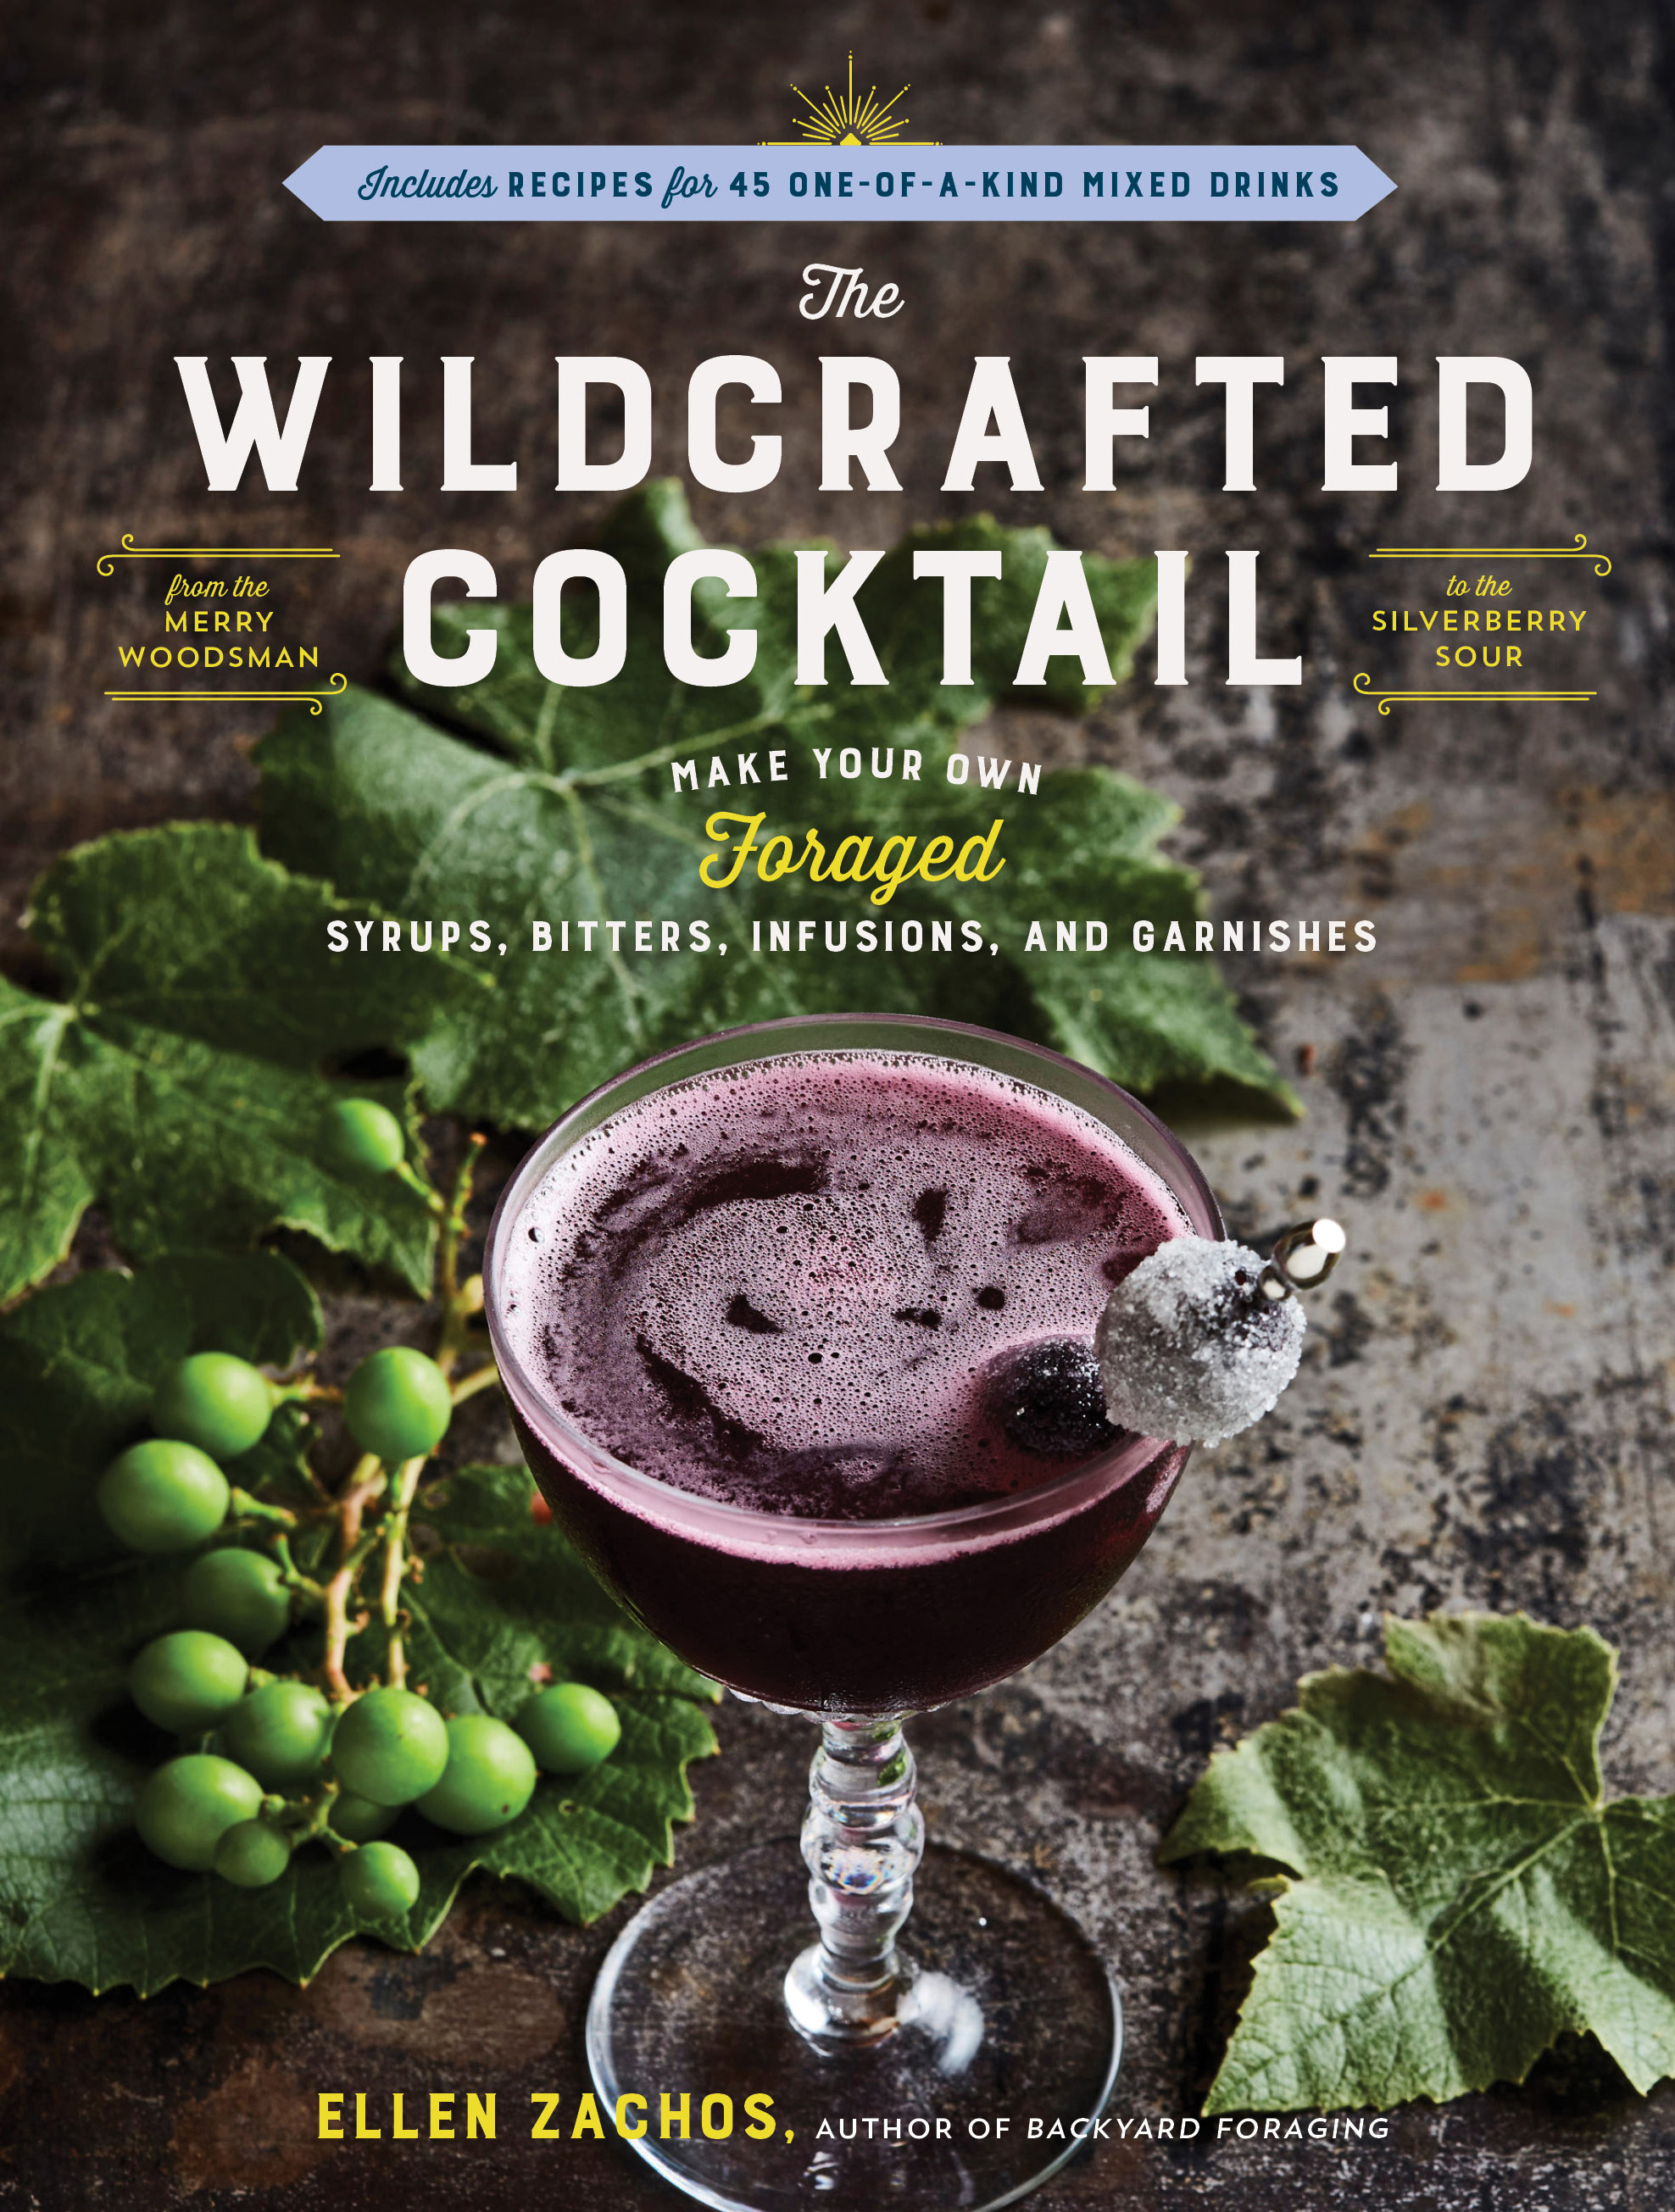 The Wildcrafted Cocktail Make Your Own Foraged Syrups, Bitters, Infusions, and Garnishes; Includes Recipes for 45 One-of-a-Kind Mixed Drinks - Ellen Zachos